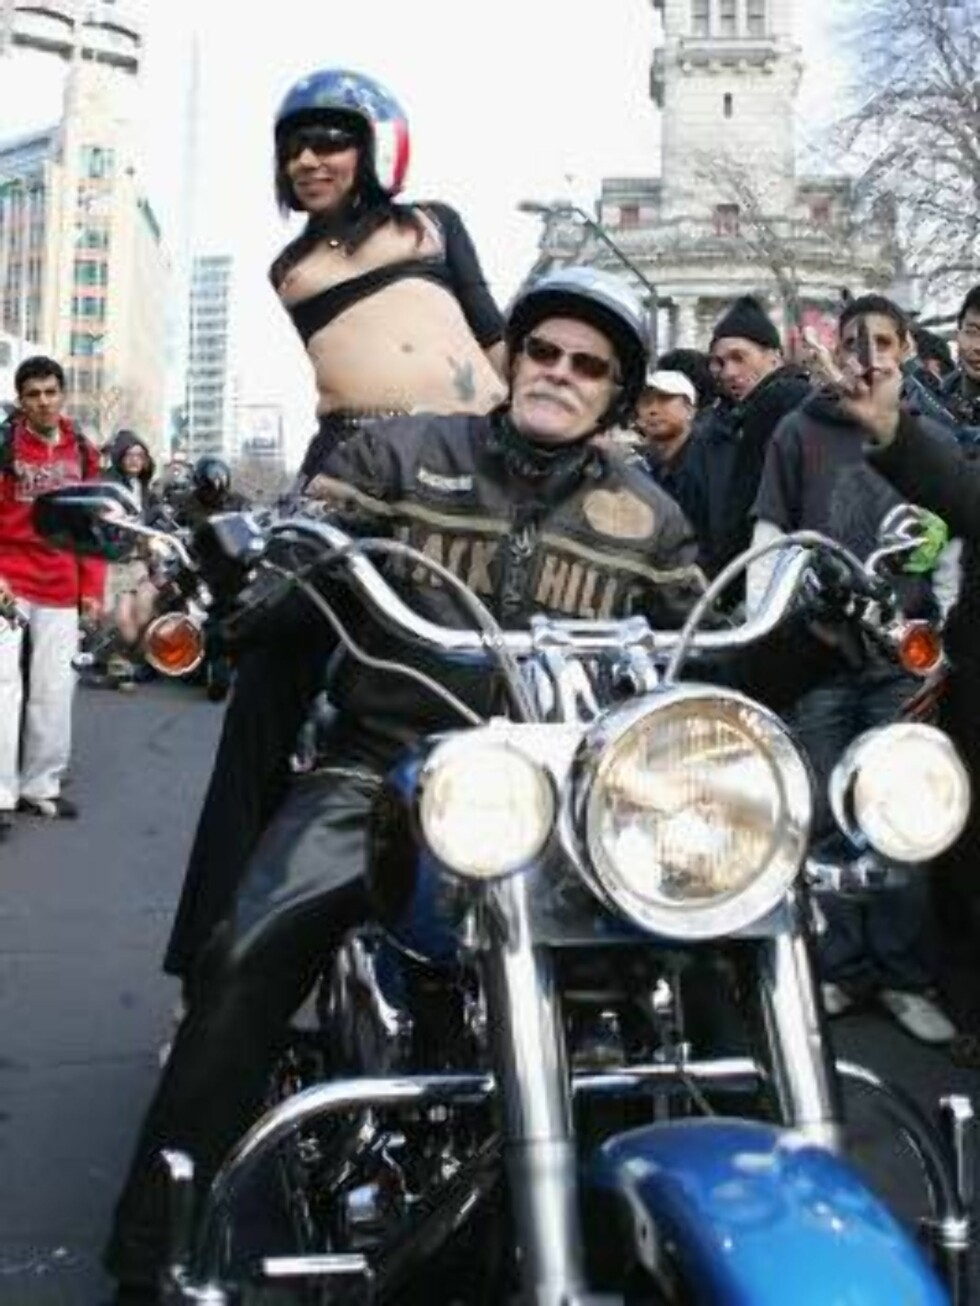 AUCKLAND, NEW ZEALAND - AUGUST 23:  (EDITOR'S NOTE: NUDITY)  A topless porn star rides on the back of a motorcycle down Queen Street during the Boobs on Bikes Parade August 23, 2006 in Auckland, New Zealand. The parade is to promote the Erotica Expo that Foto: All Over Press